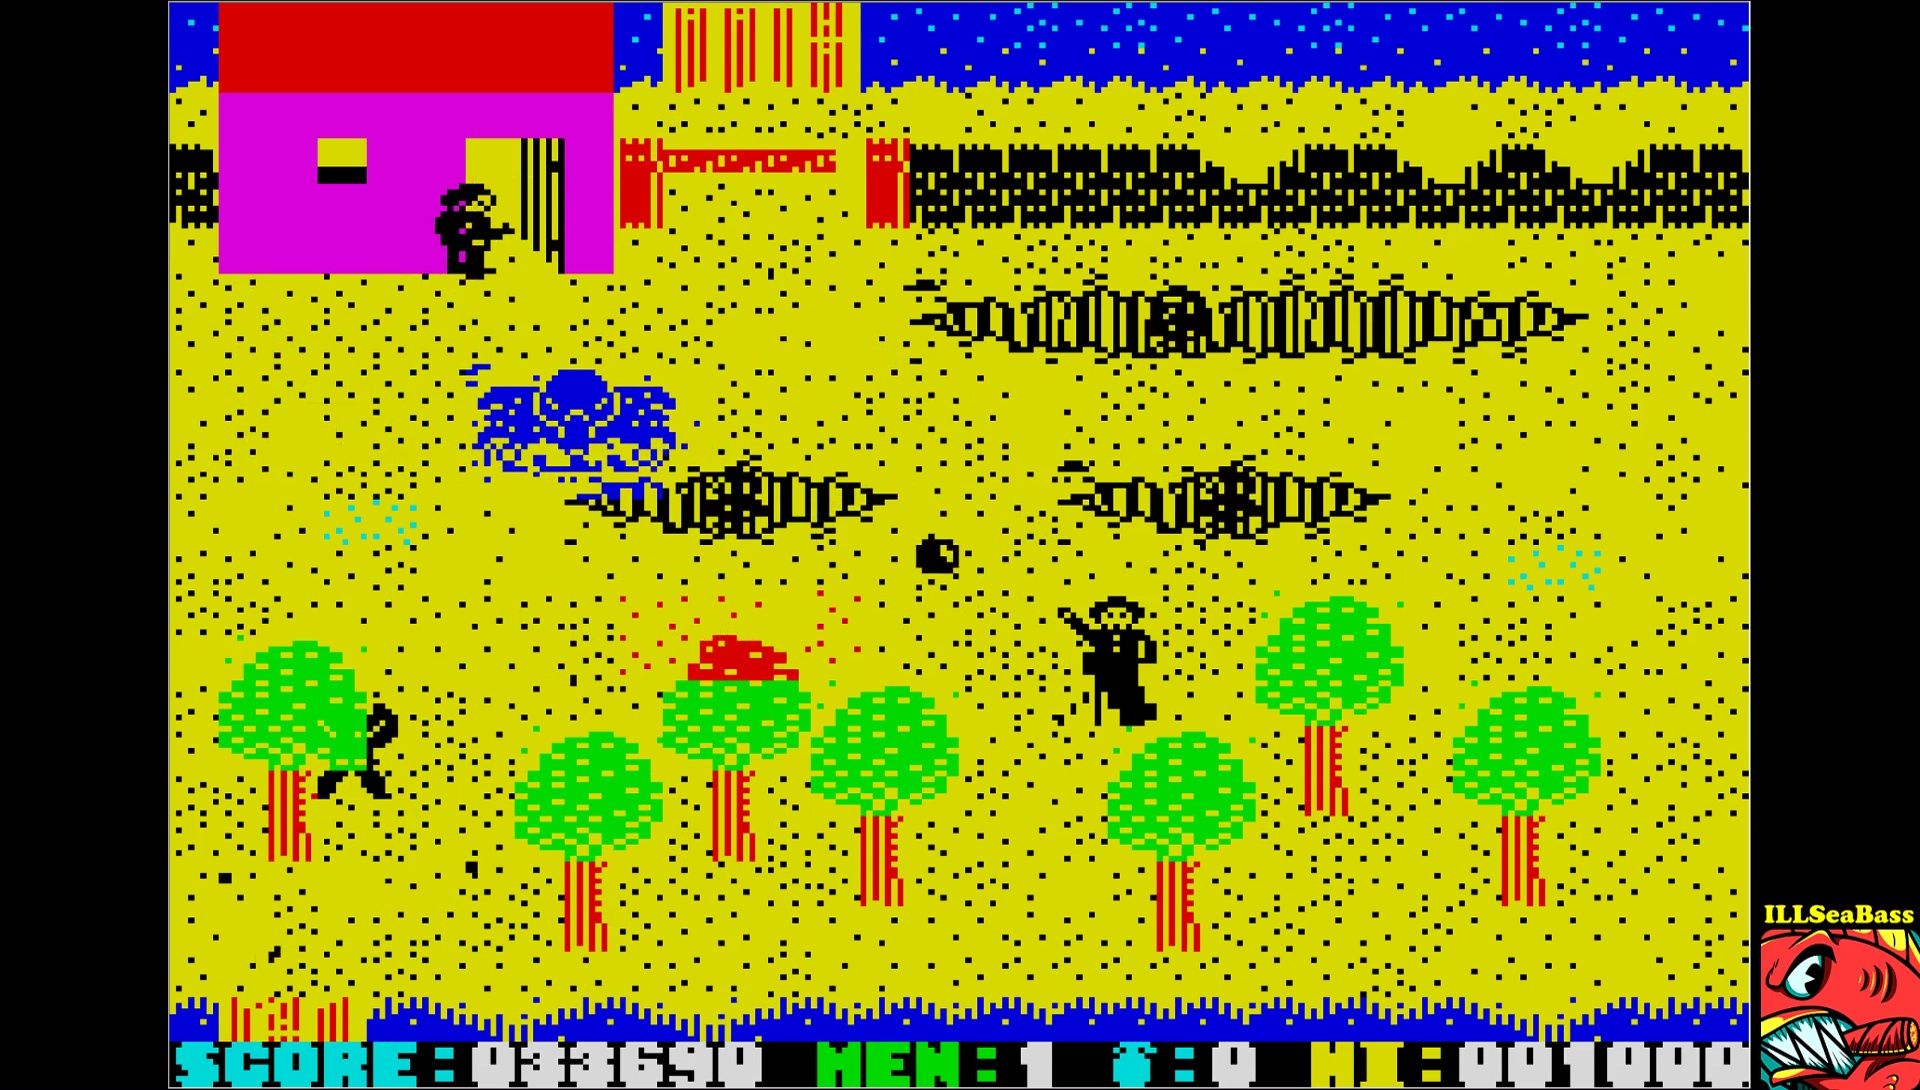 ILLSeaBass: Who Dares Wins II (ZX Spectrum Emulated) 33,690 points on 2017-06-13 08:51:04